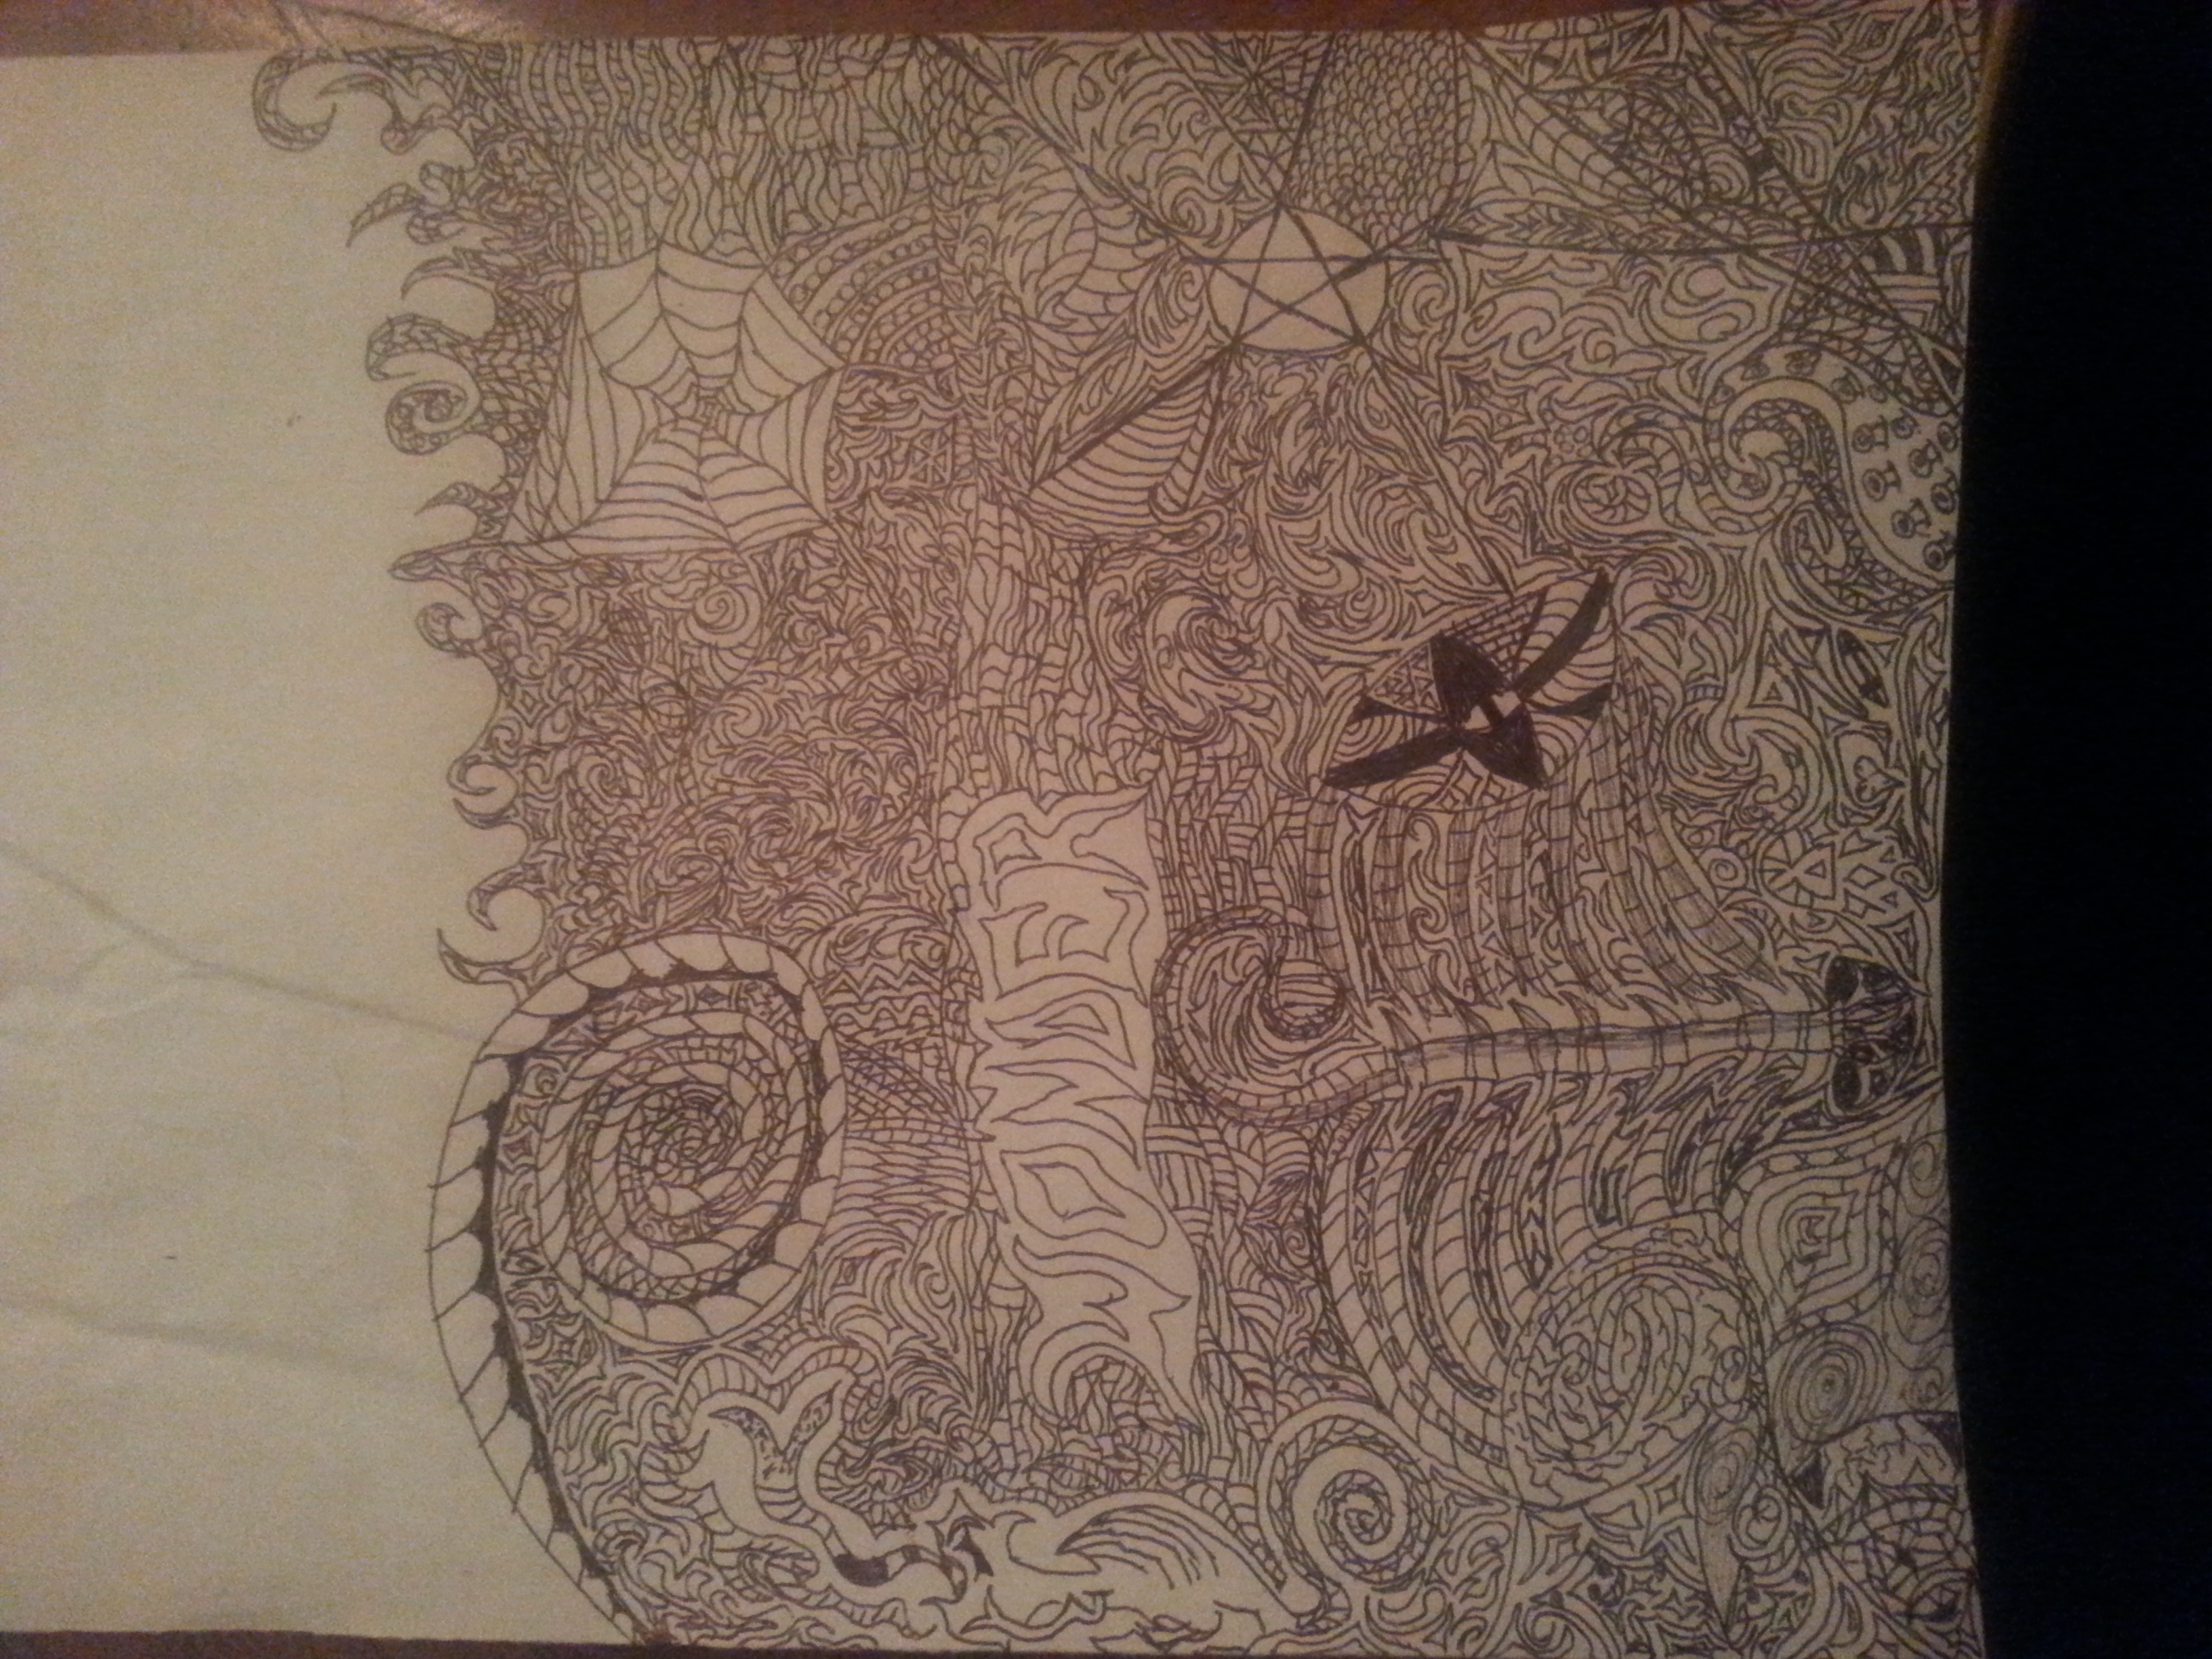 Trippy picture I drew sober